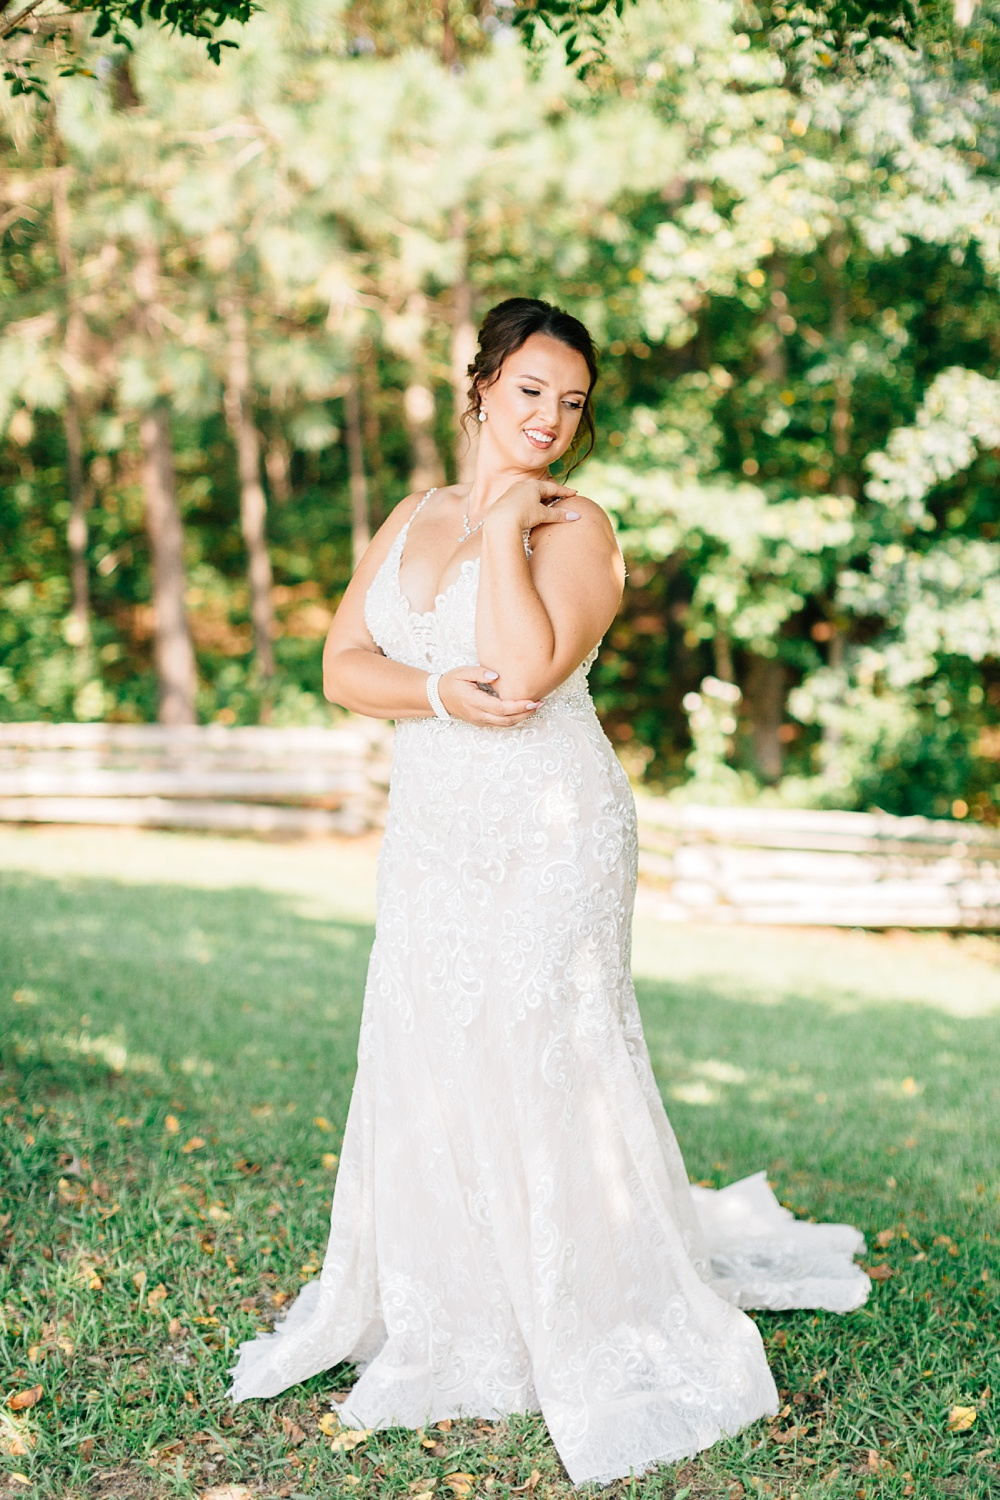 Summer Wedding at Shady Wagon Farm in New Hill, NC